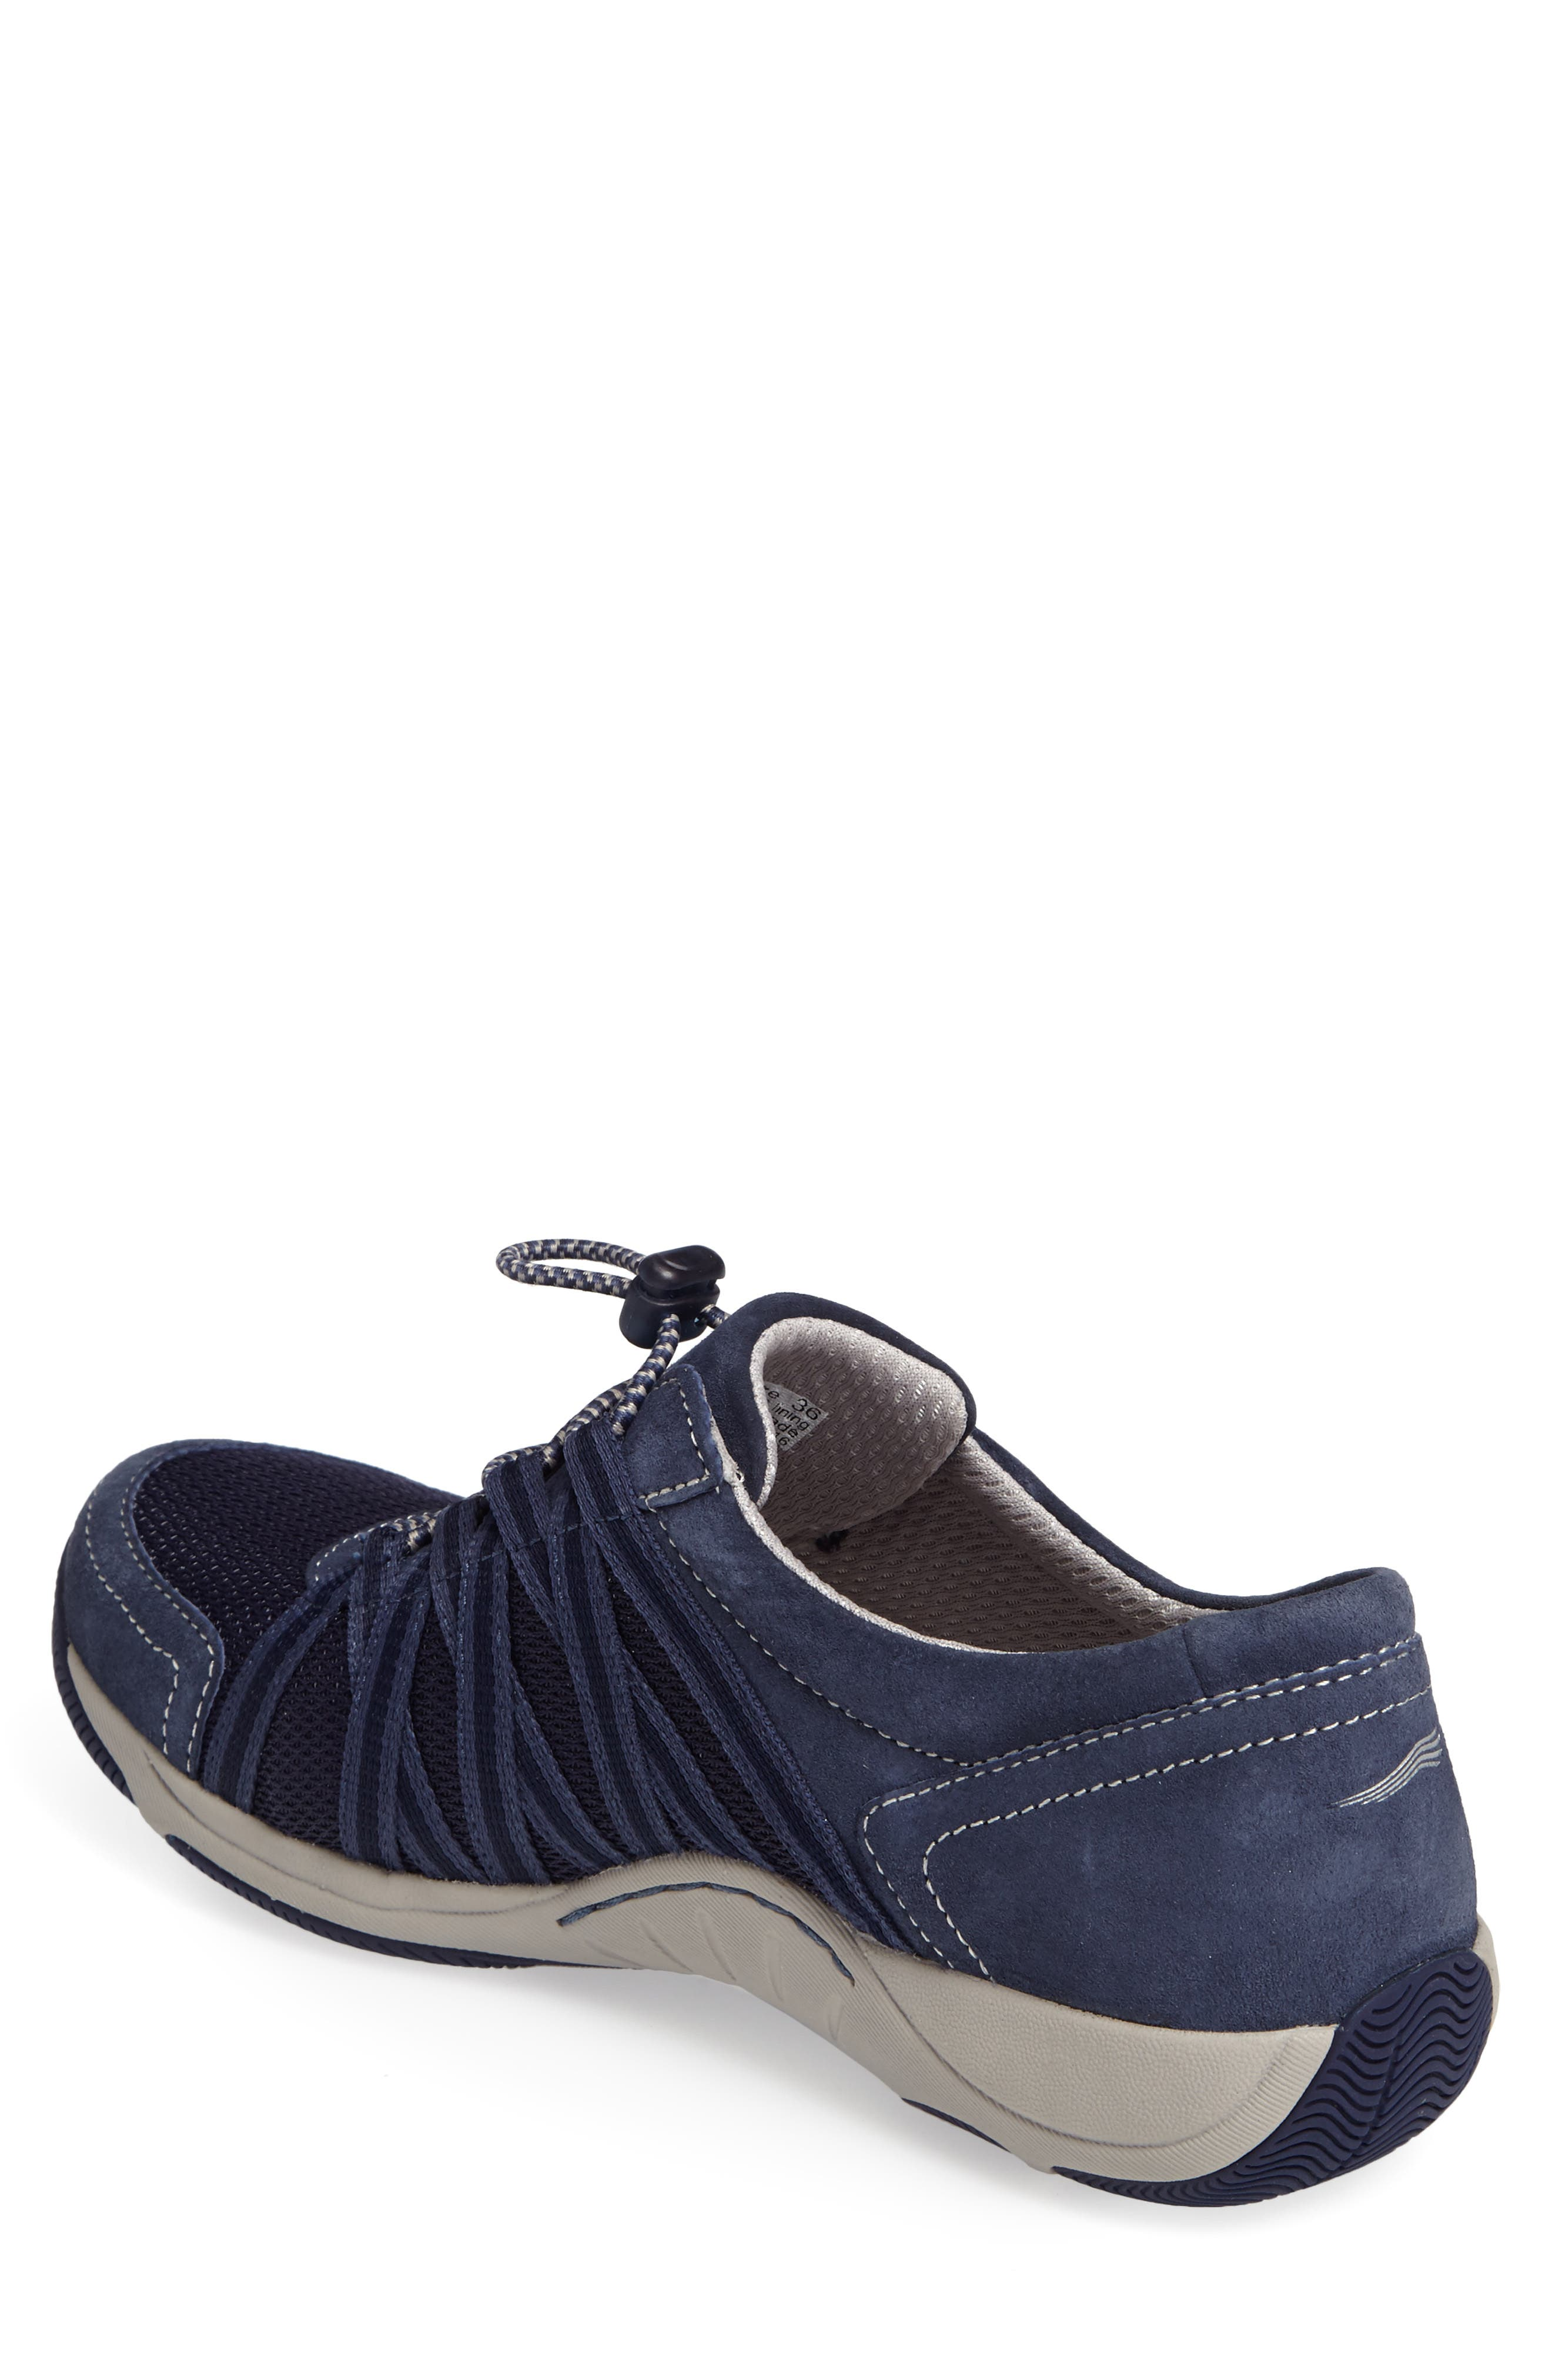 Halifax Collection Honor Sneaker,                             Alternate thumbnail 23, color,